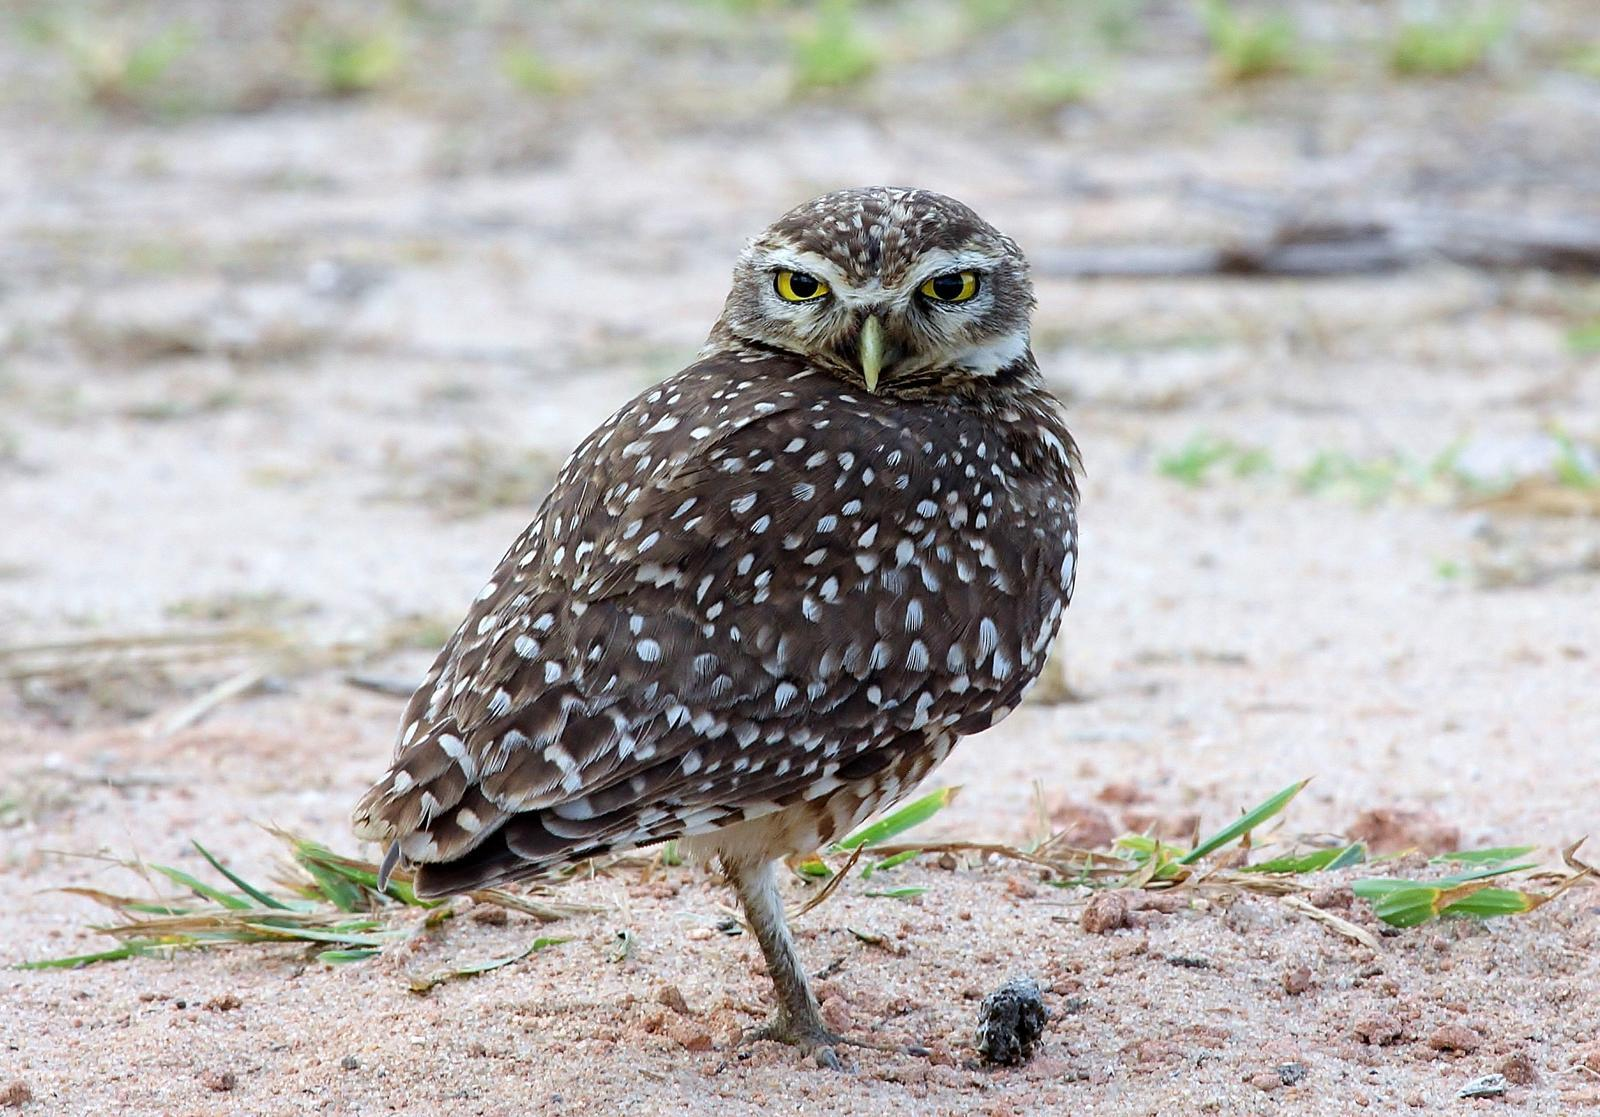 Burrowing Owl Photo by Matthew McCluskey